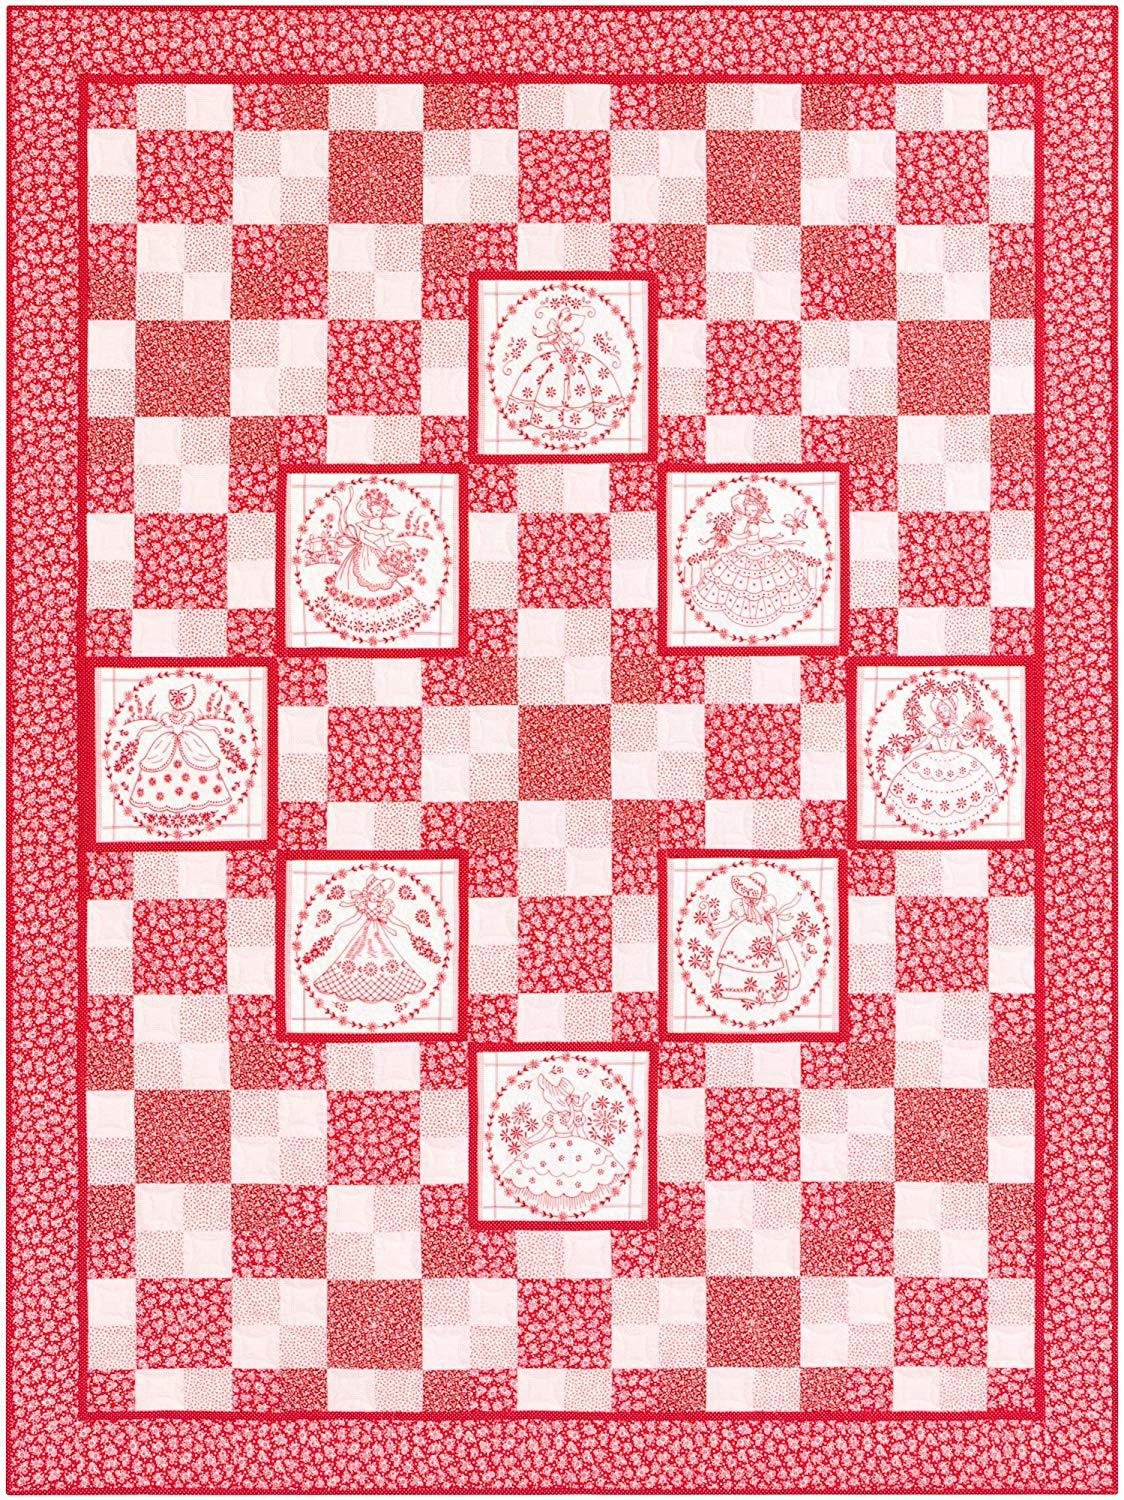 Sweethearts Redwork Kit from Southern Belles Collection by Robert Kaufman, Darlene Zimmerman, 59 x 79